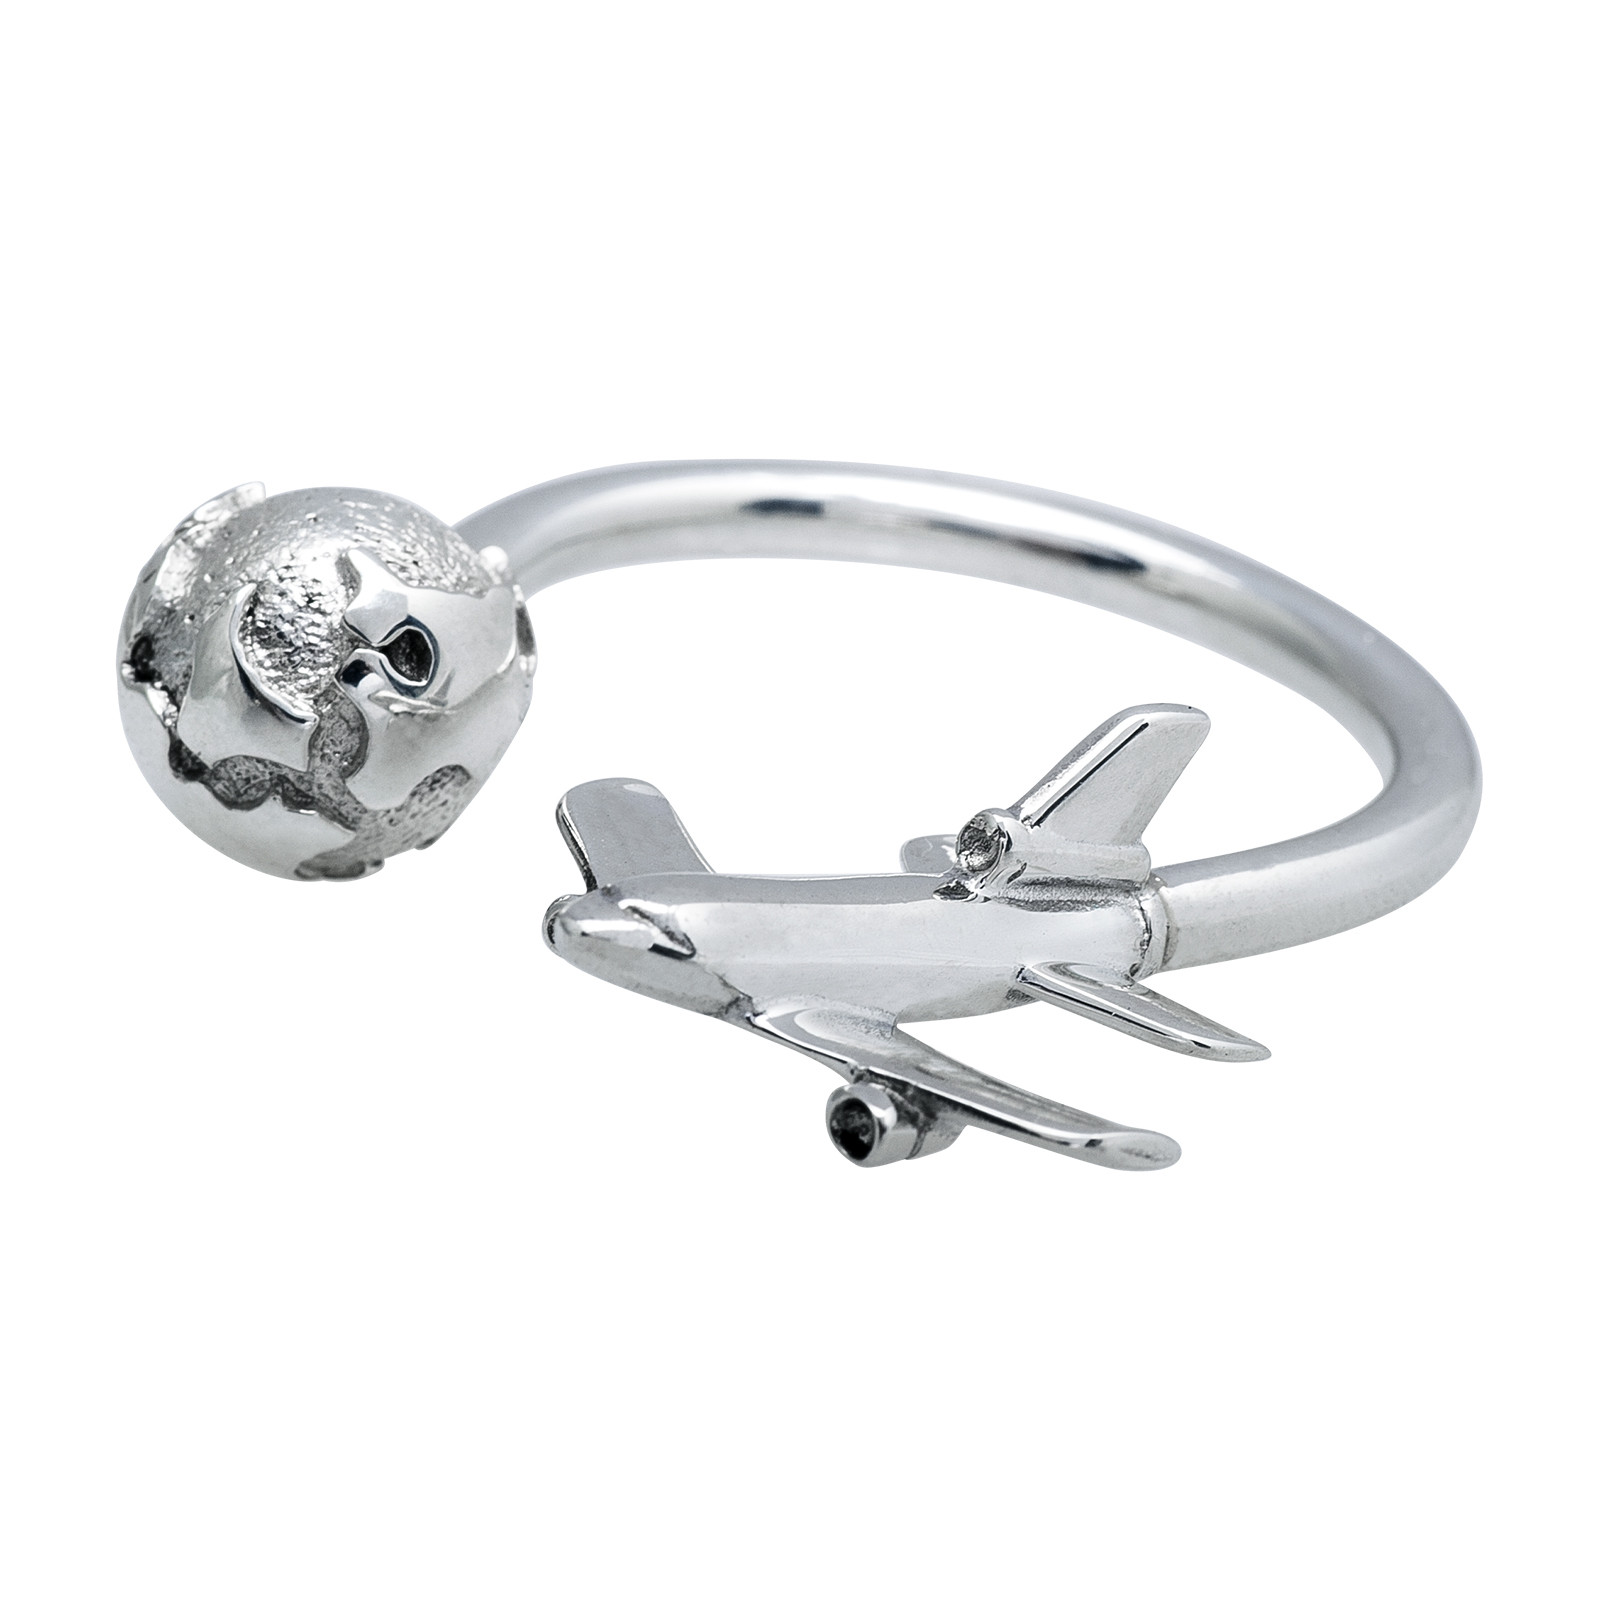 Vintage Tiffany & Co. Airplane & Globe Keychain